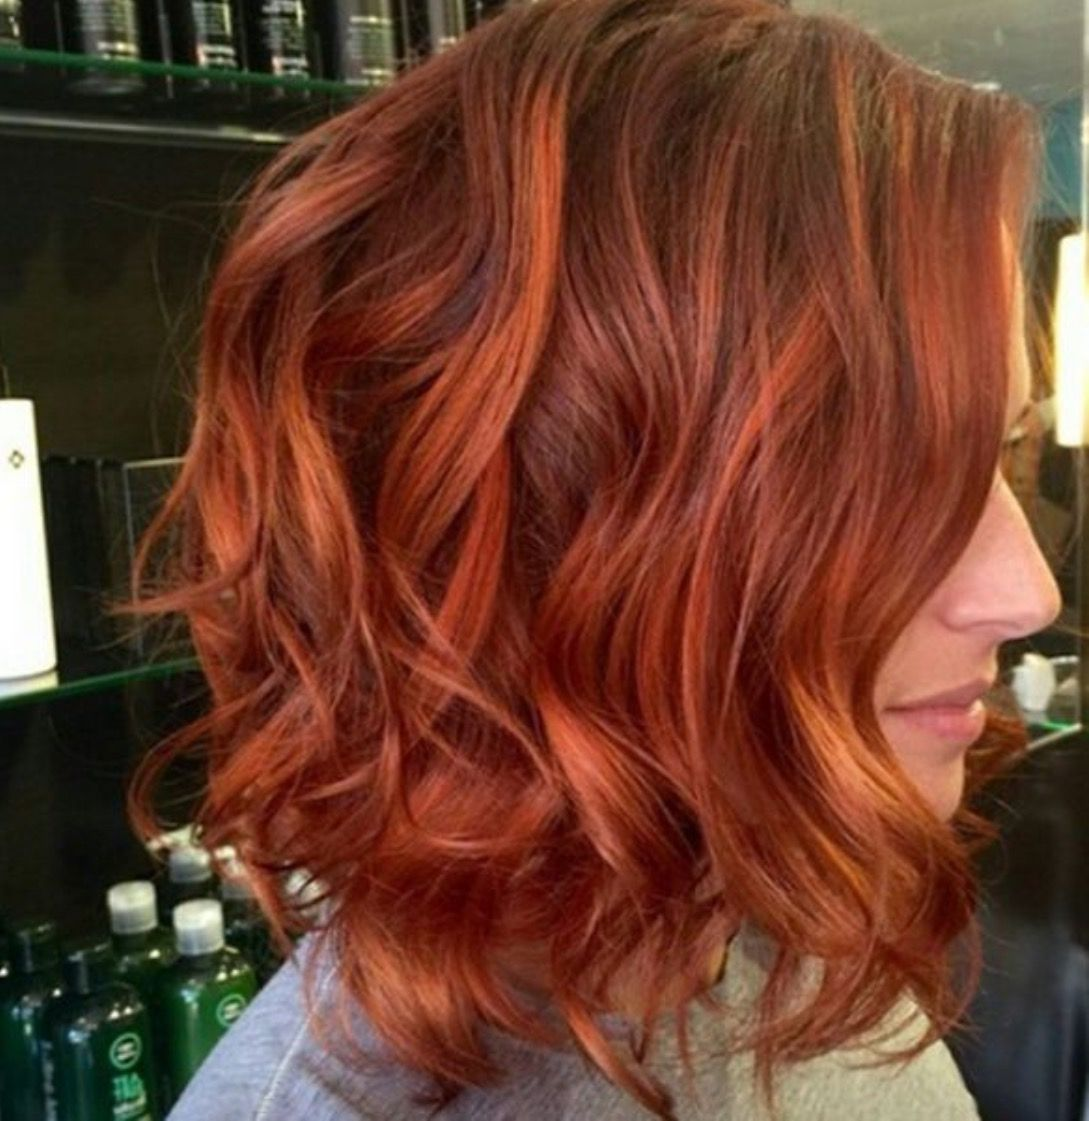 Pin by courtney kruithoff on my style pinterest hair coloring